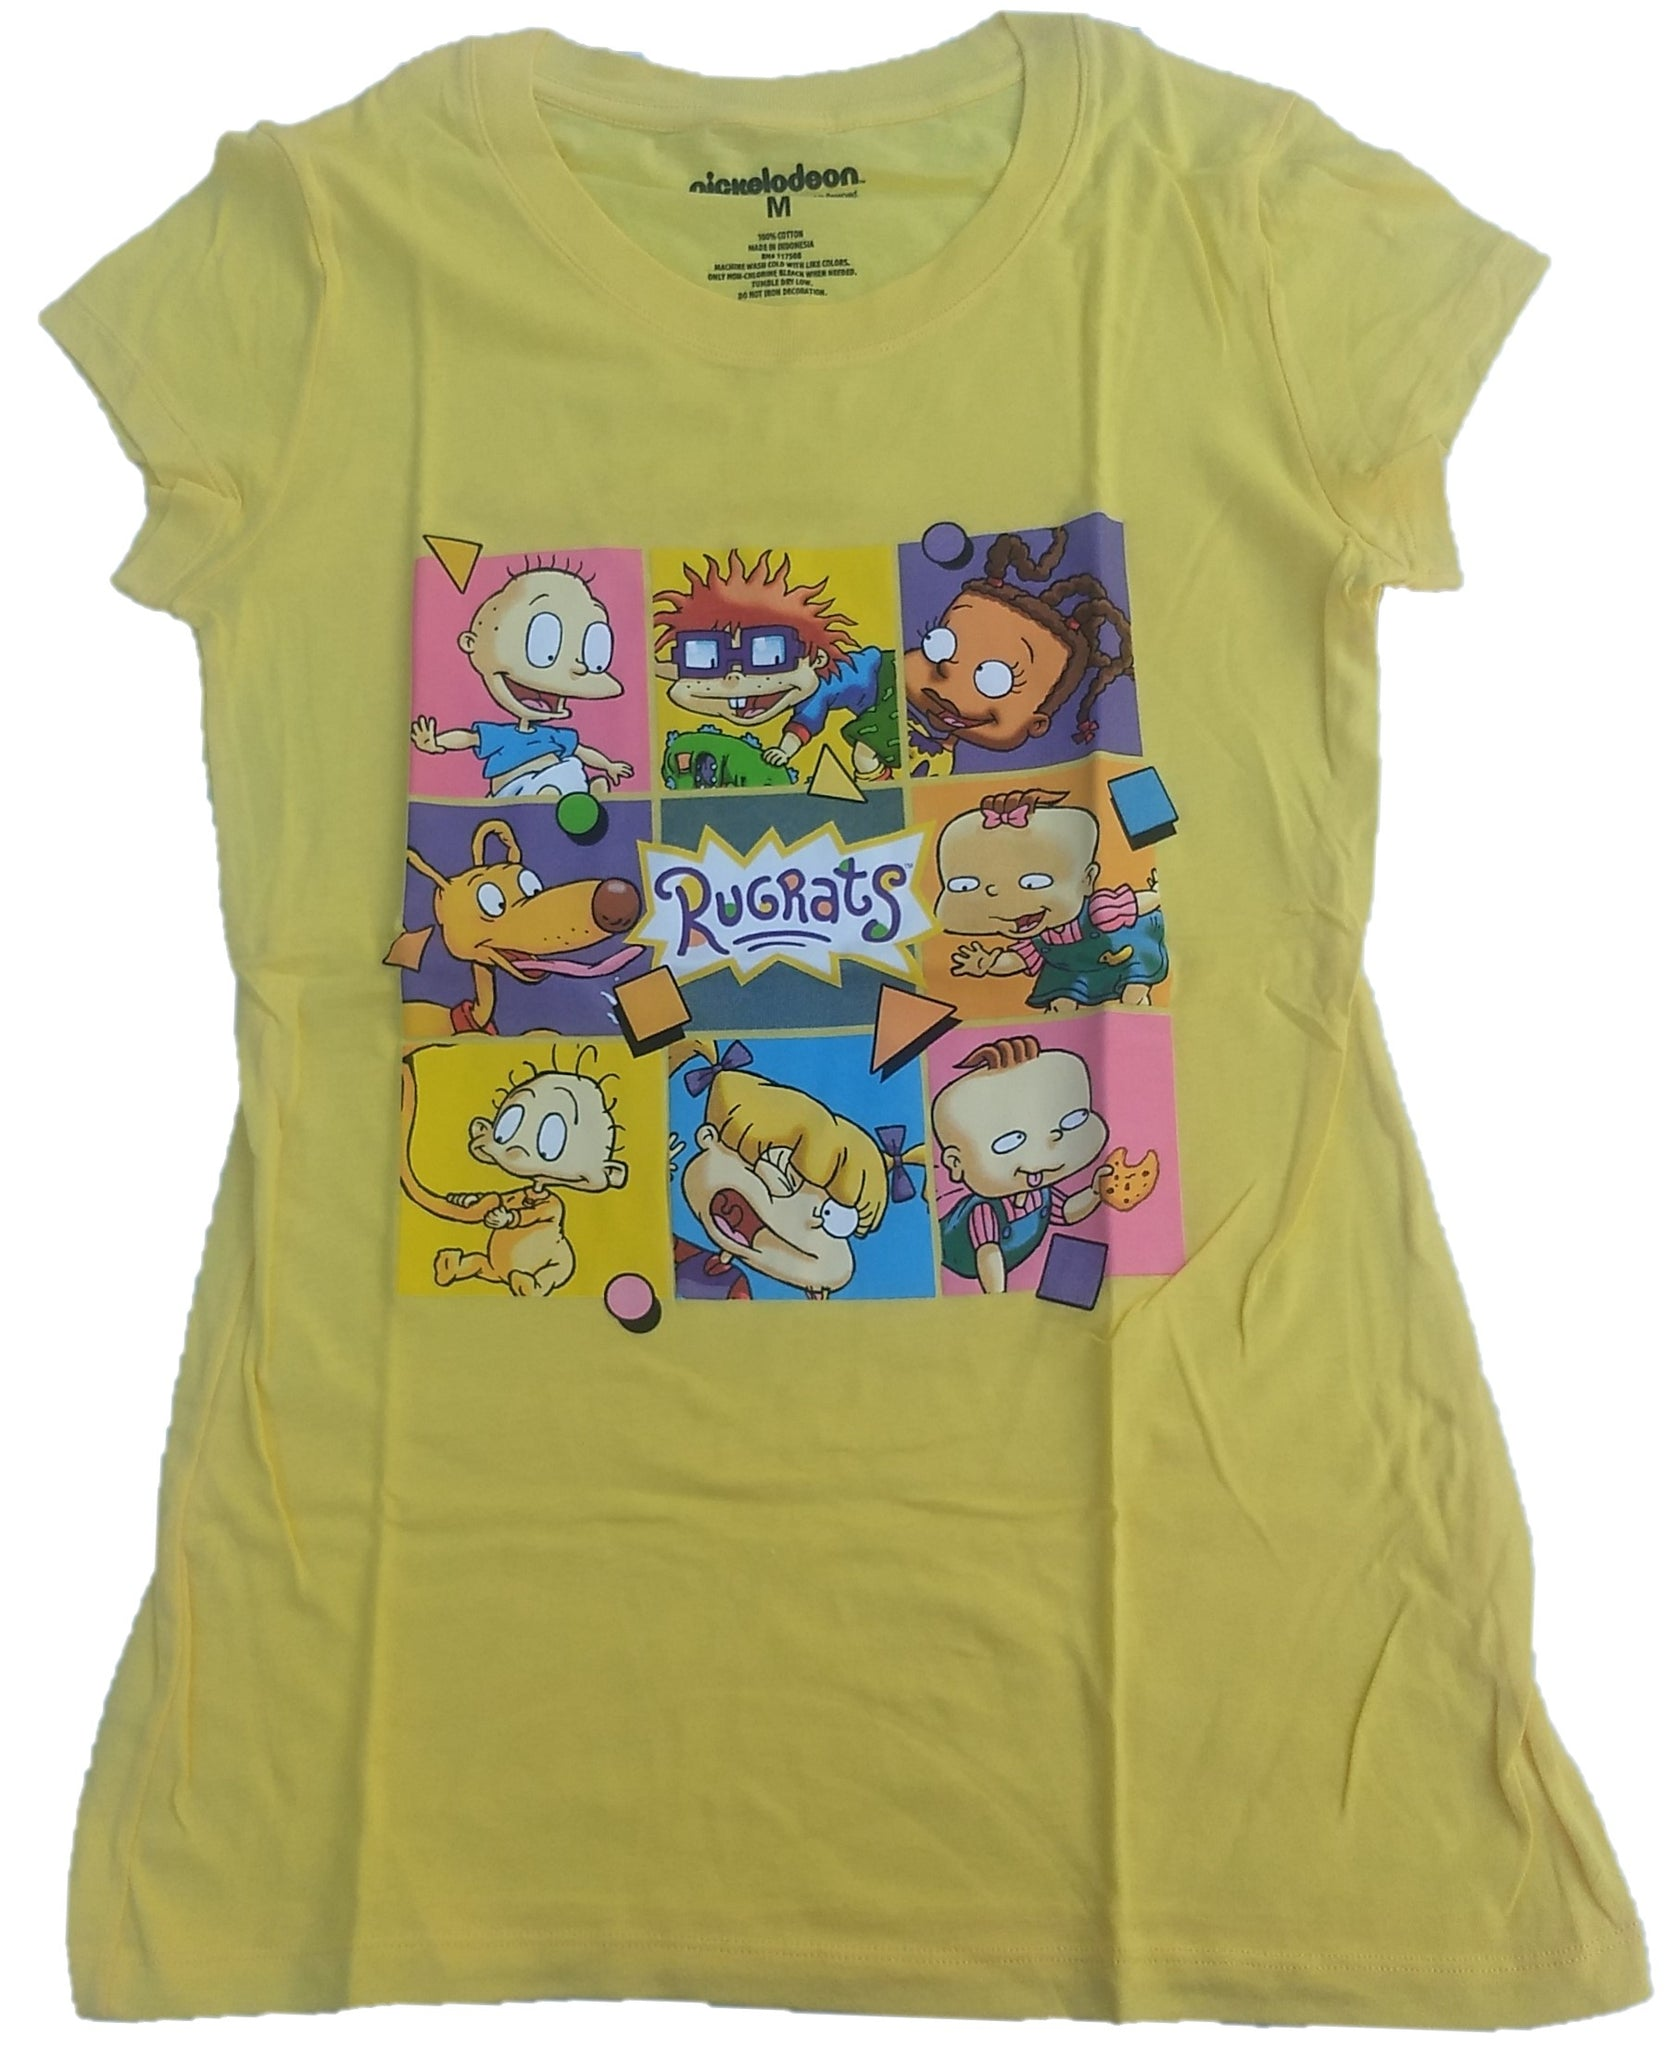 Nickelodeon Rugrats Cast of Characters Juniors T-Shirt (Yellow)